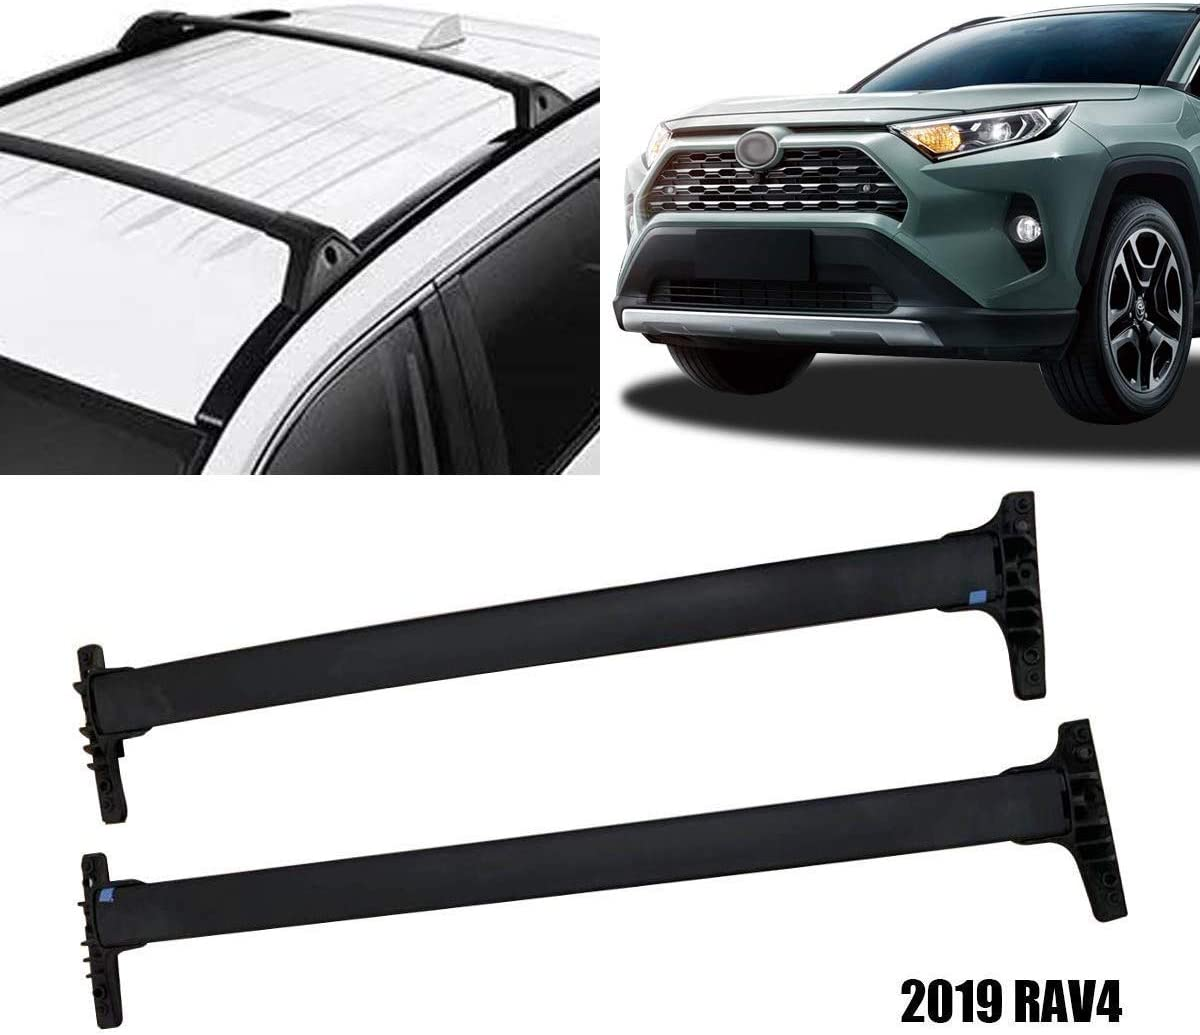 YUZHONGTIAN 2019 2020 for Toyota RAV4 Car Exterior OEM Style Top Roof Rack Side Rails Luggage Carrier